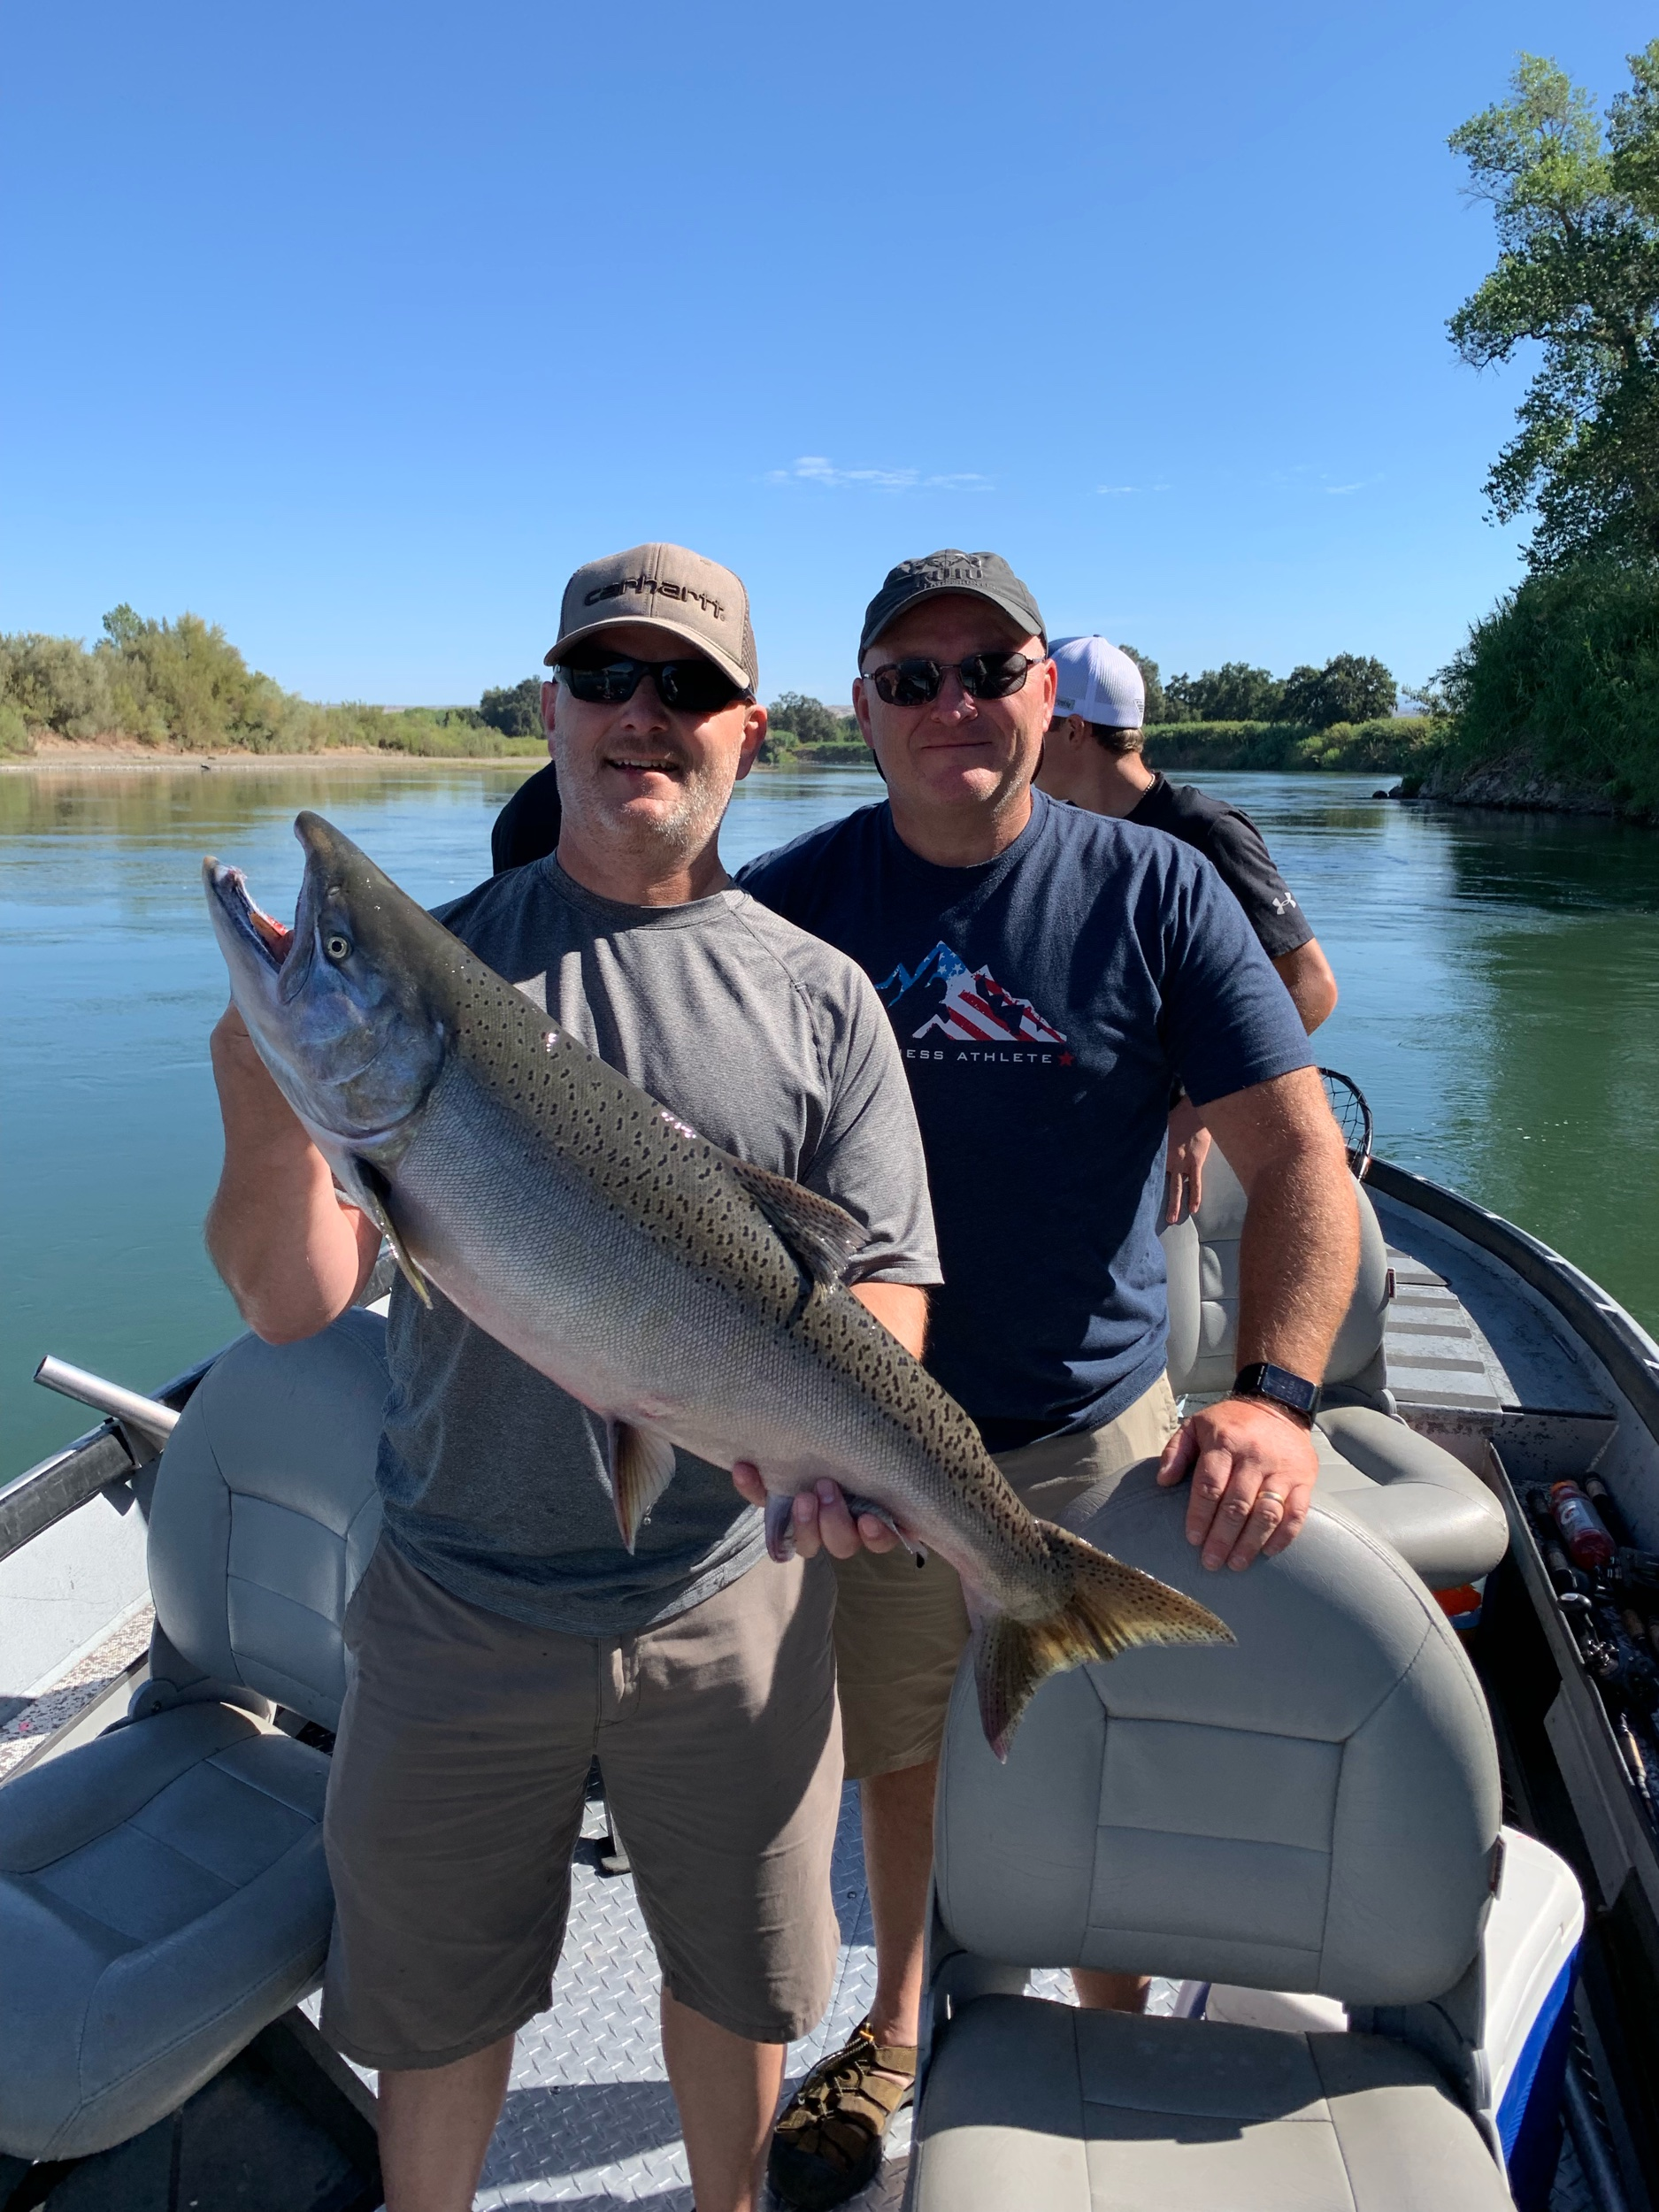 This hefty male chinook salmon was caught on September 3, 2019 by guest Jeff Garrett. Pictured above with his brother Doug Garrett. Jeff caught this dandy king salmon while back bouncing cured salmon roe on the Sacramento River near Red Bluff, Ca.